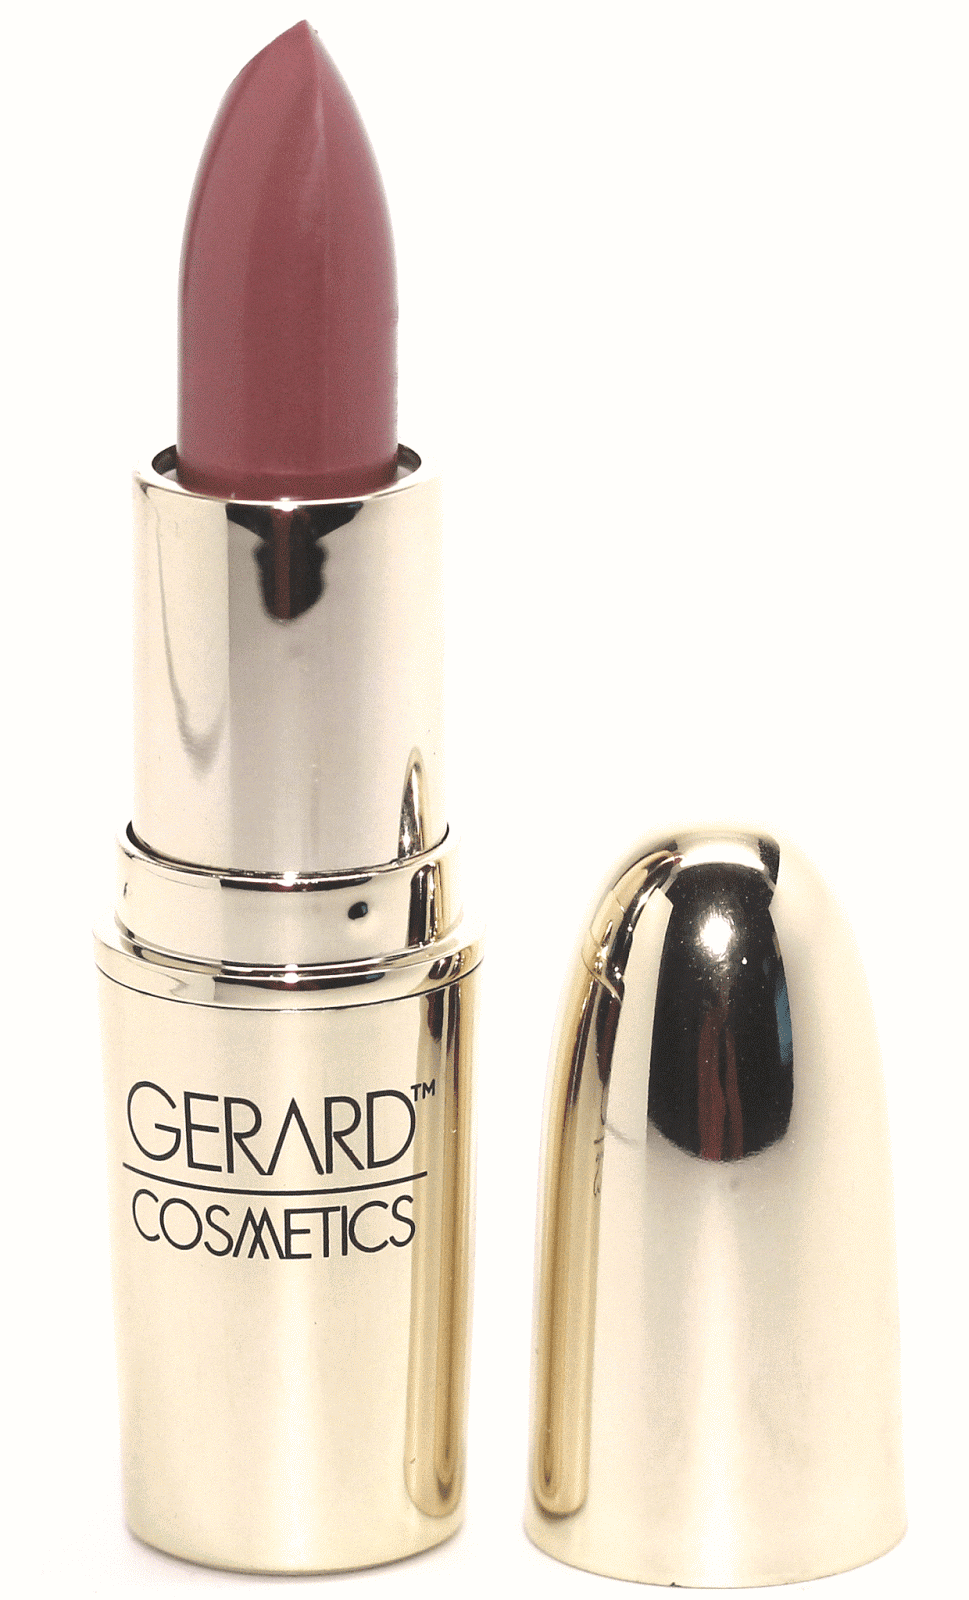 Makeup, Beauty & Fashion: GERARD COSMETICS LIPSTICK IN